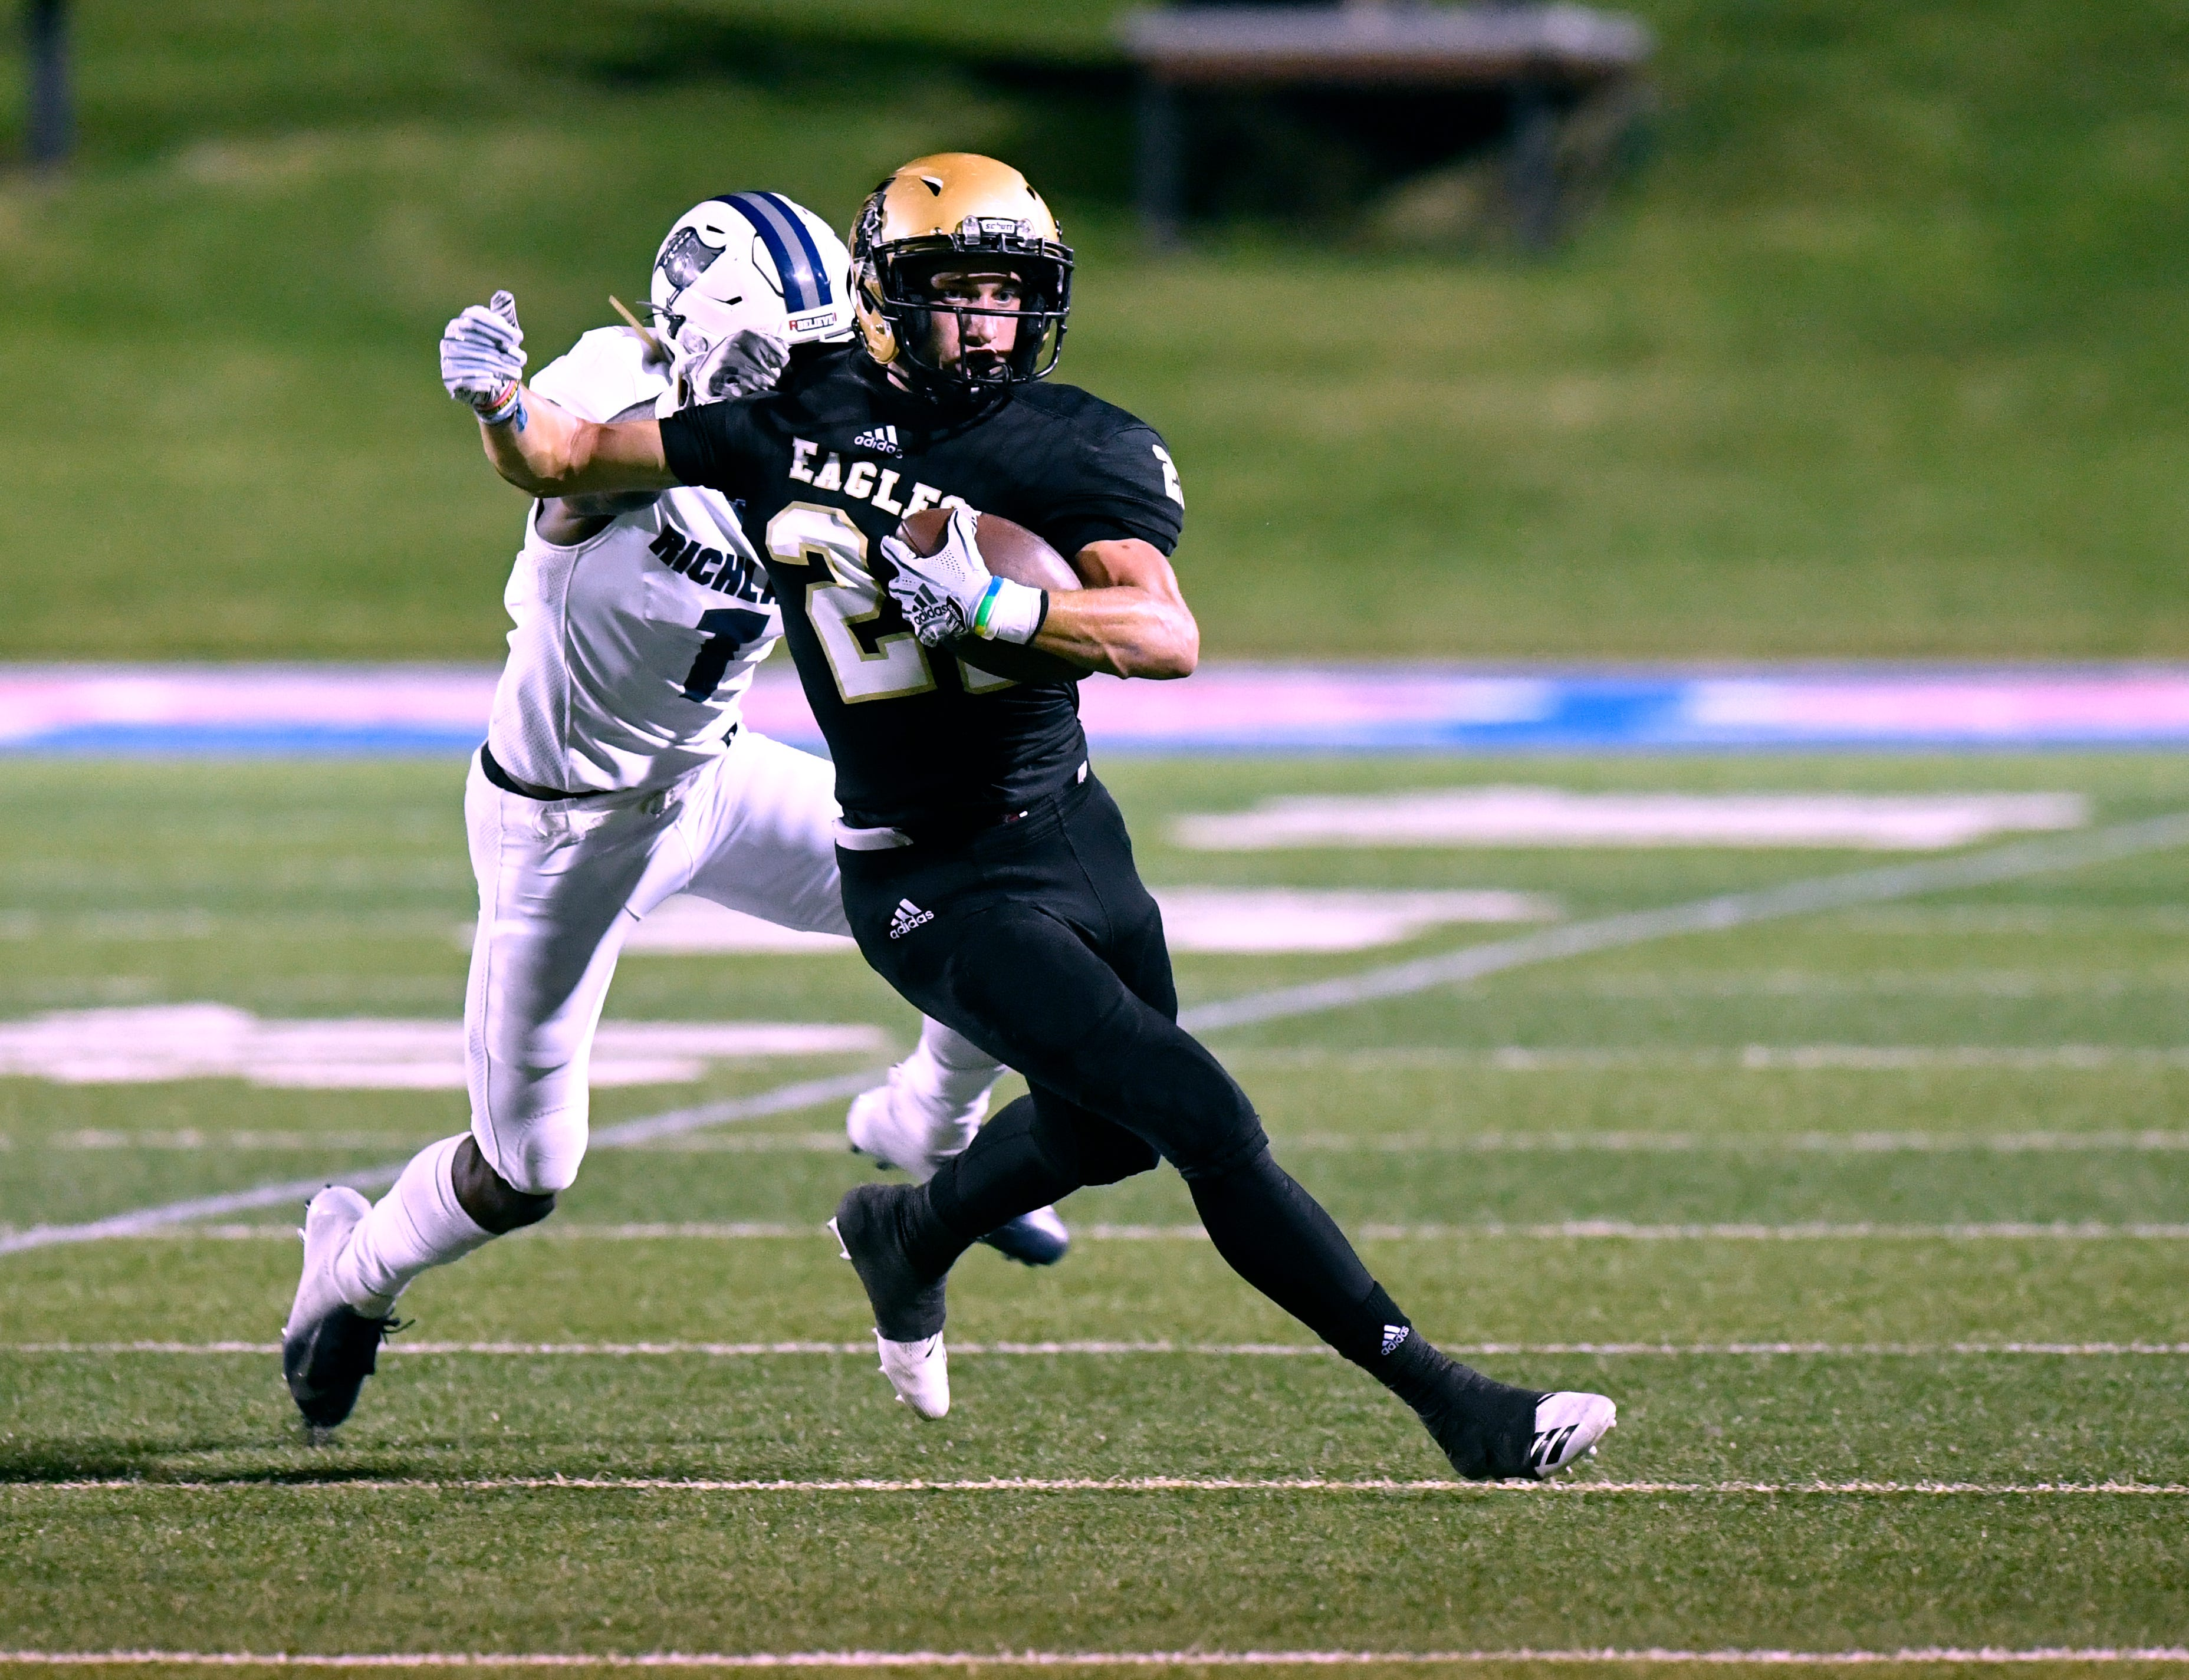 Abilene High receiver Reese Pettijohn committed to play at Hardin-Simmons on Wednesday. Pettijohn will be joined by teammate Tyler Simpson as well as other former Eagles currently on the Cowboys roster.